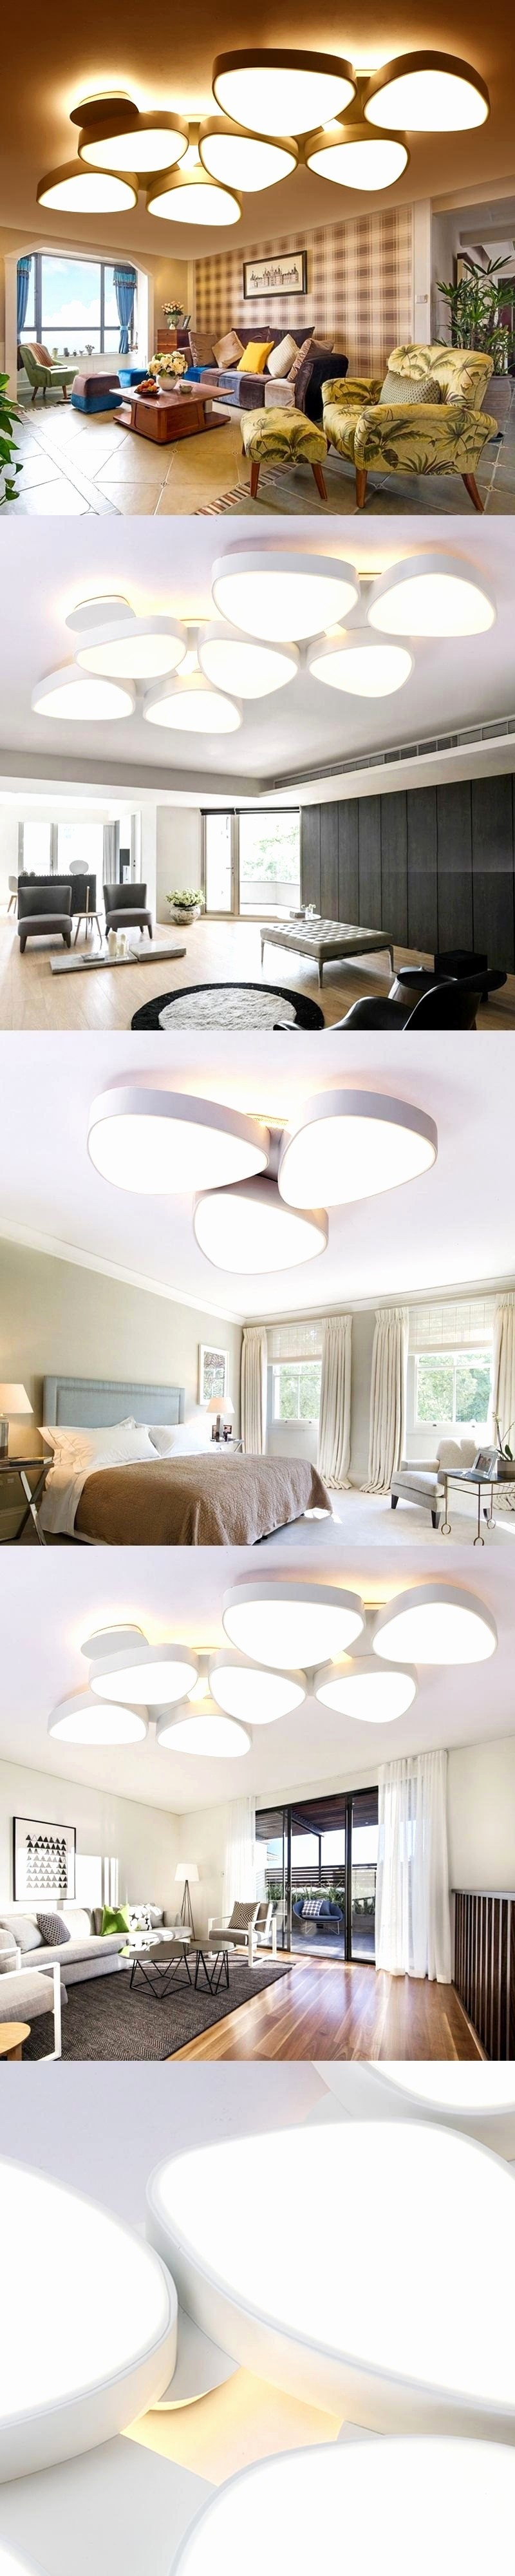 Home fice Ceiling Light Inspirational Led Lighting for Fices New Dominion Lighting 0d